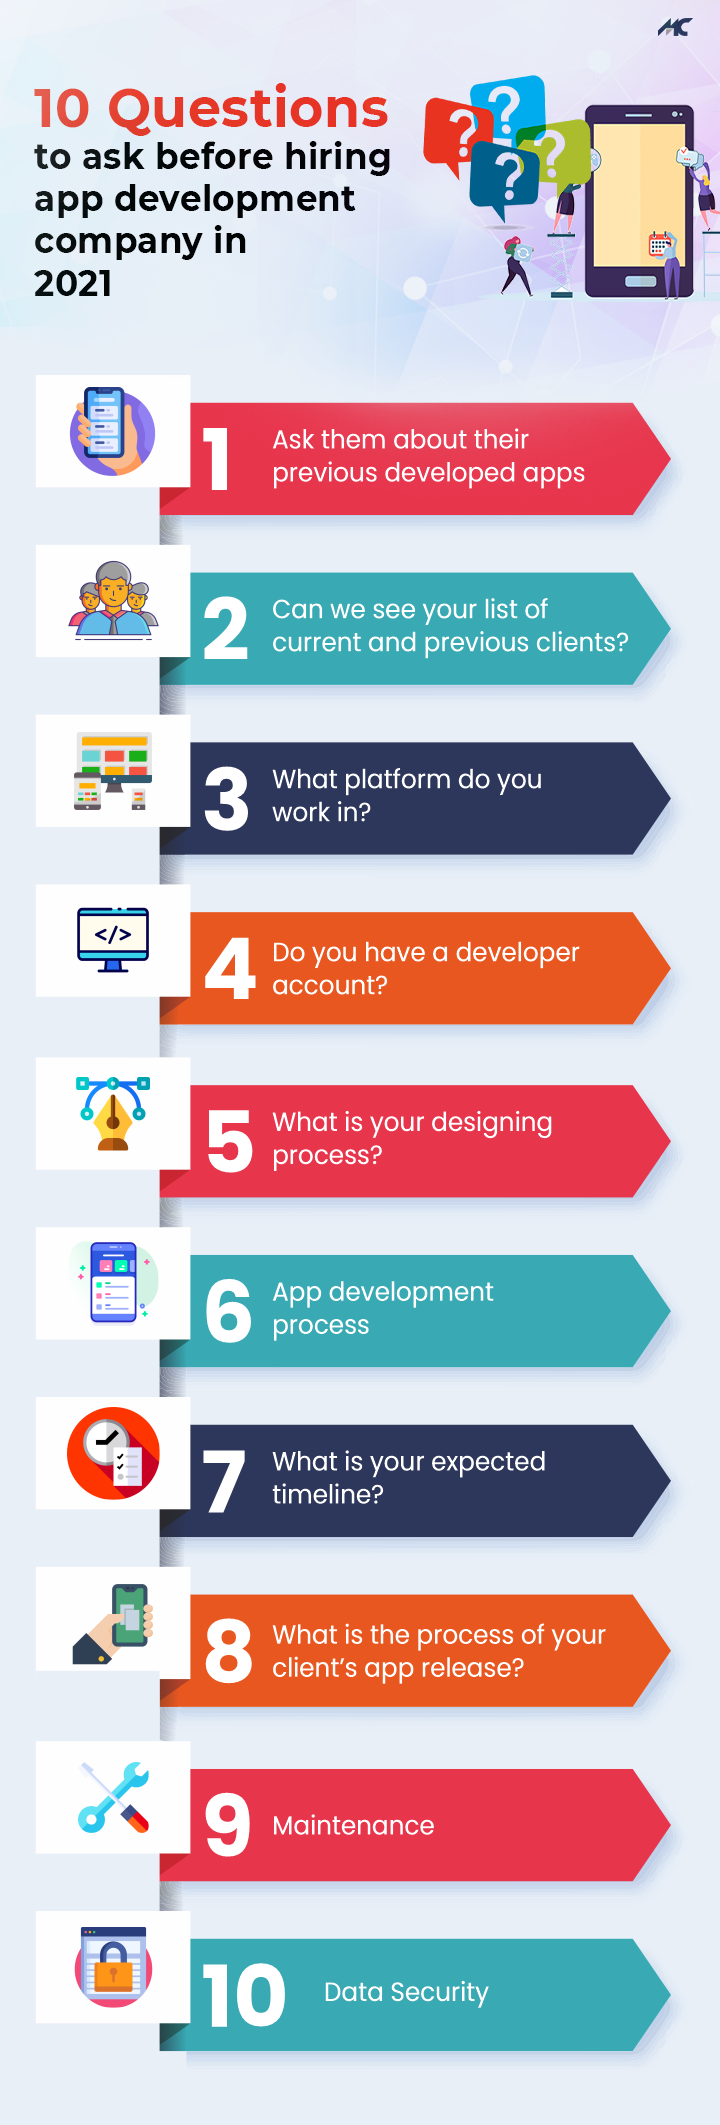 10 Questions to ask before hiring mobile app development company